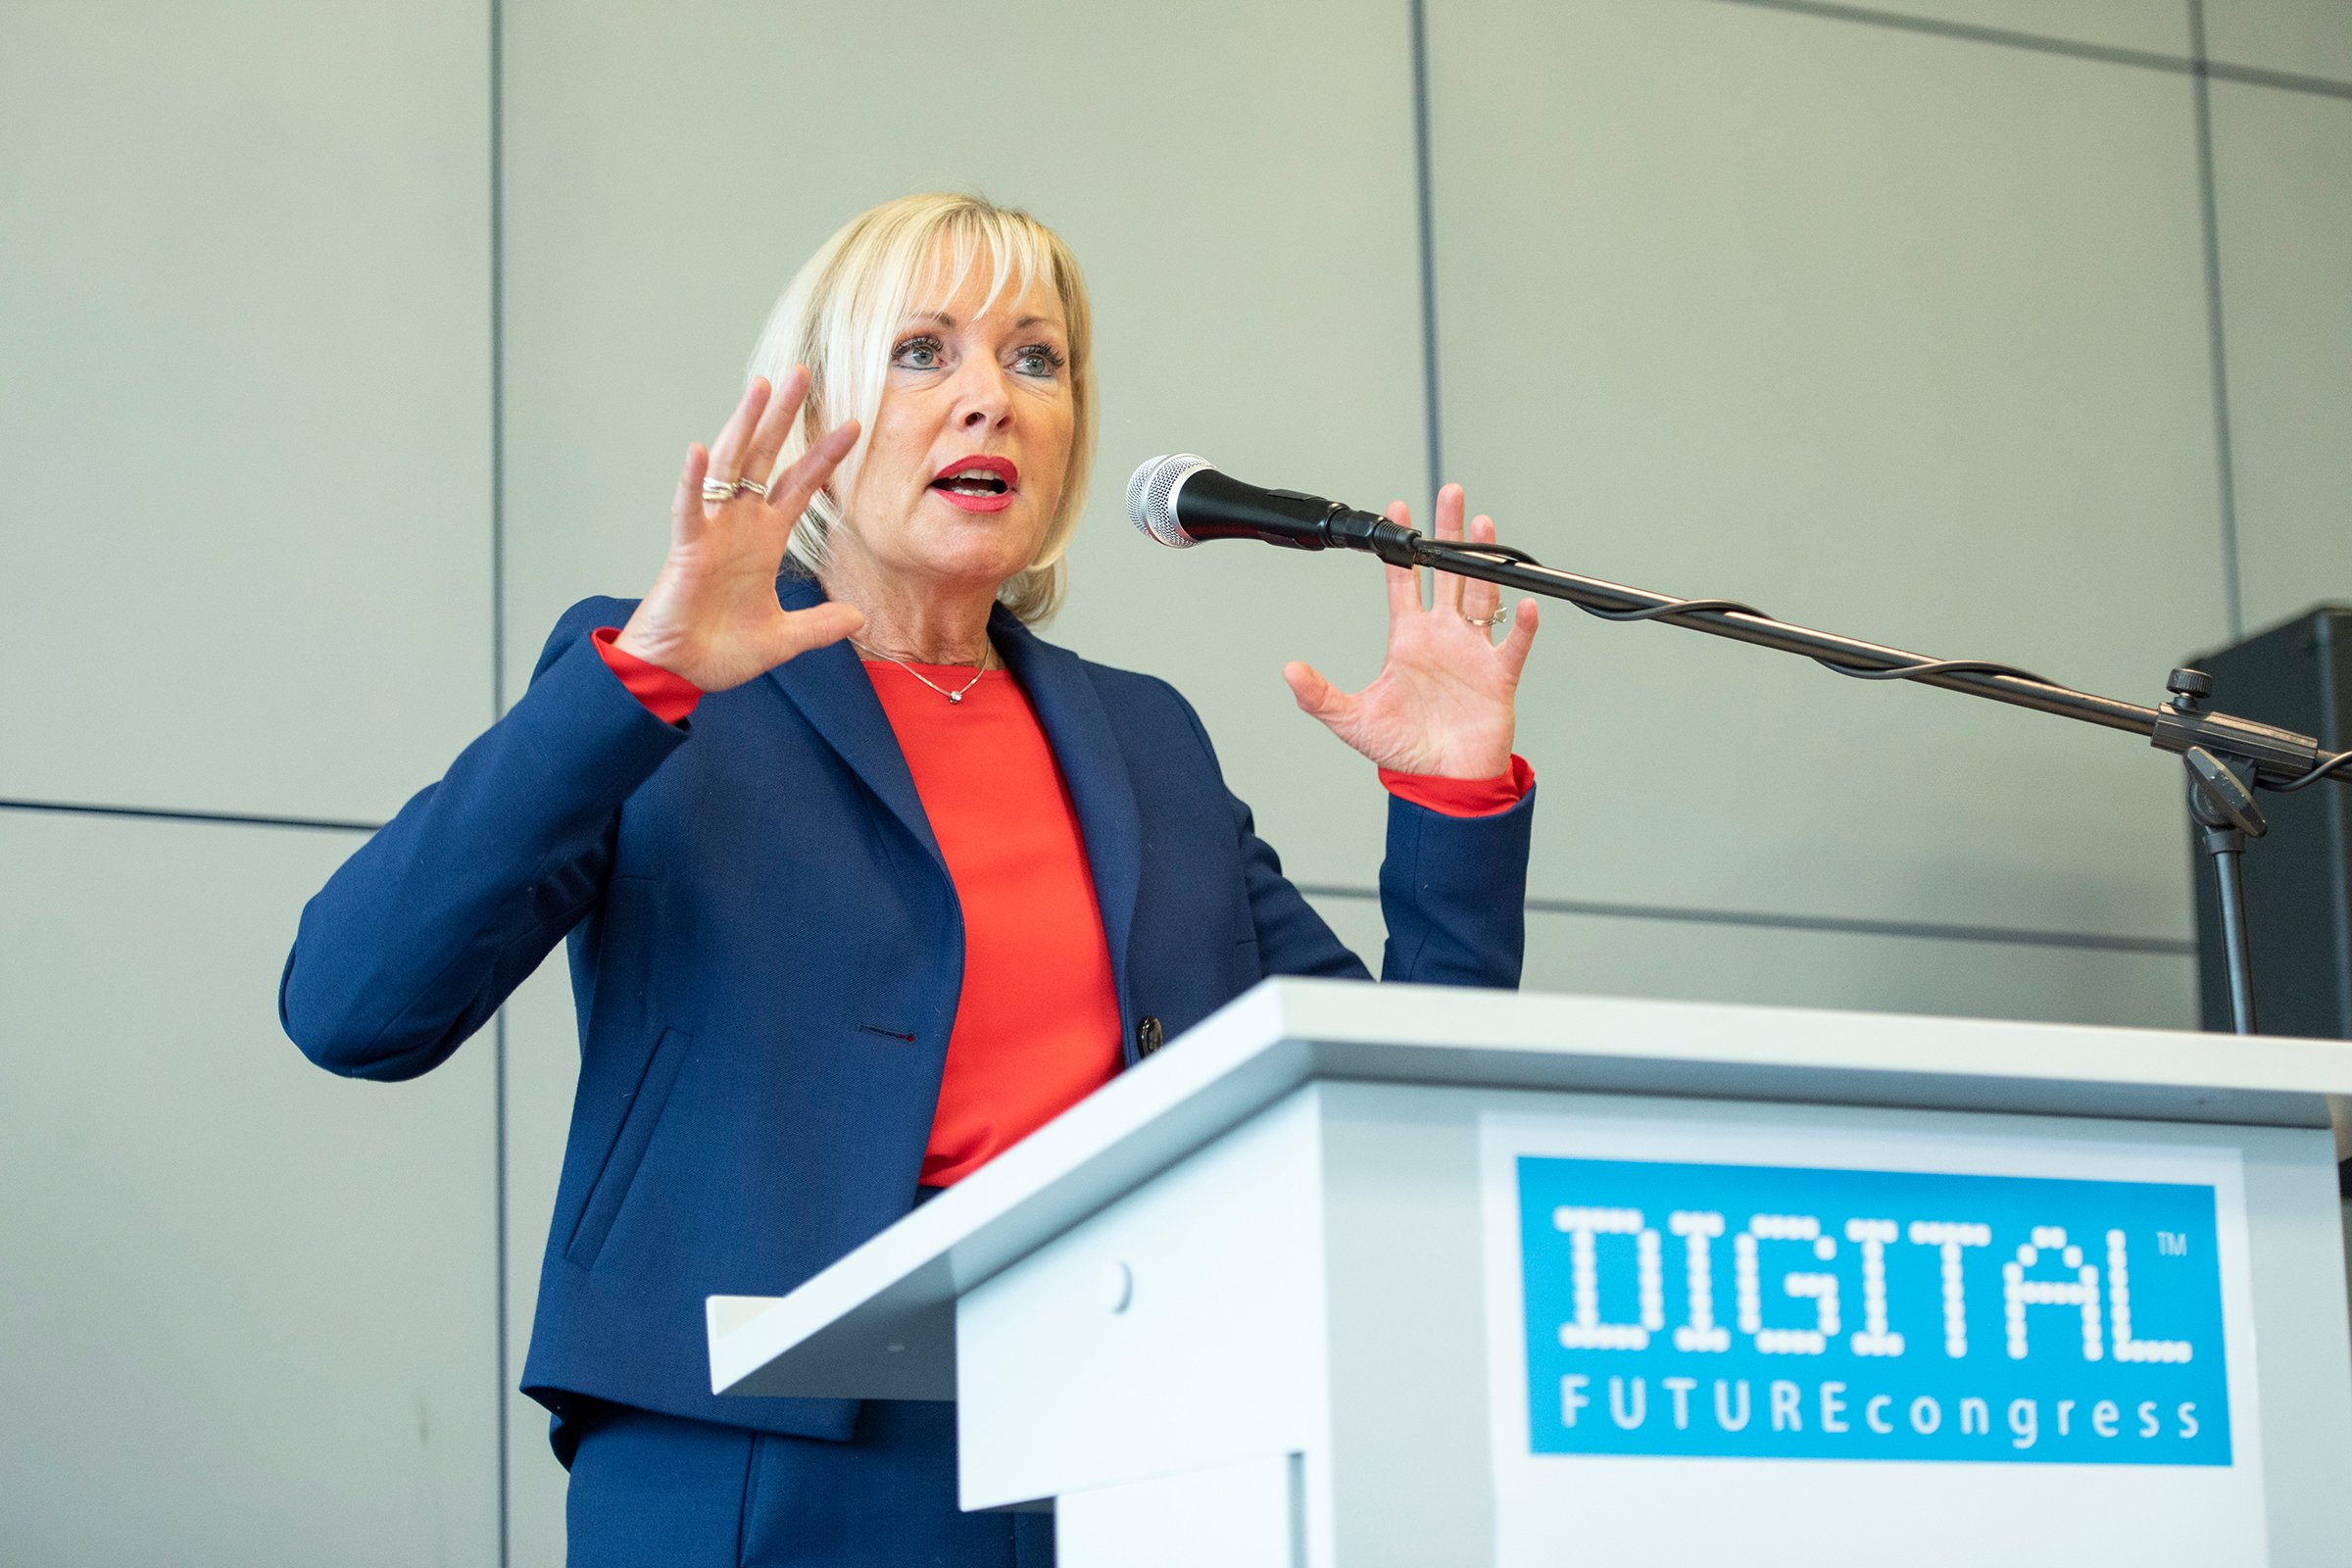 Digital Future Congress 2019